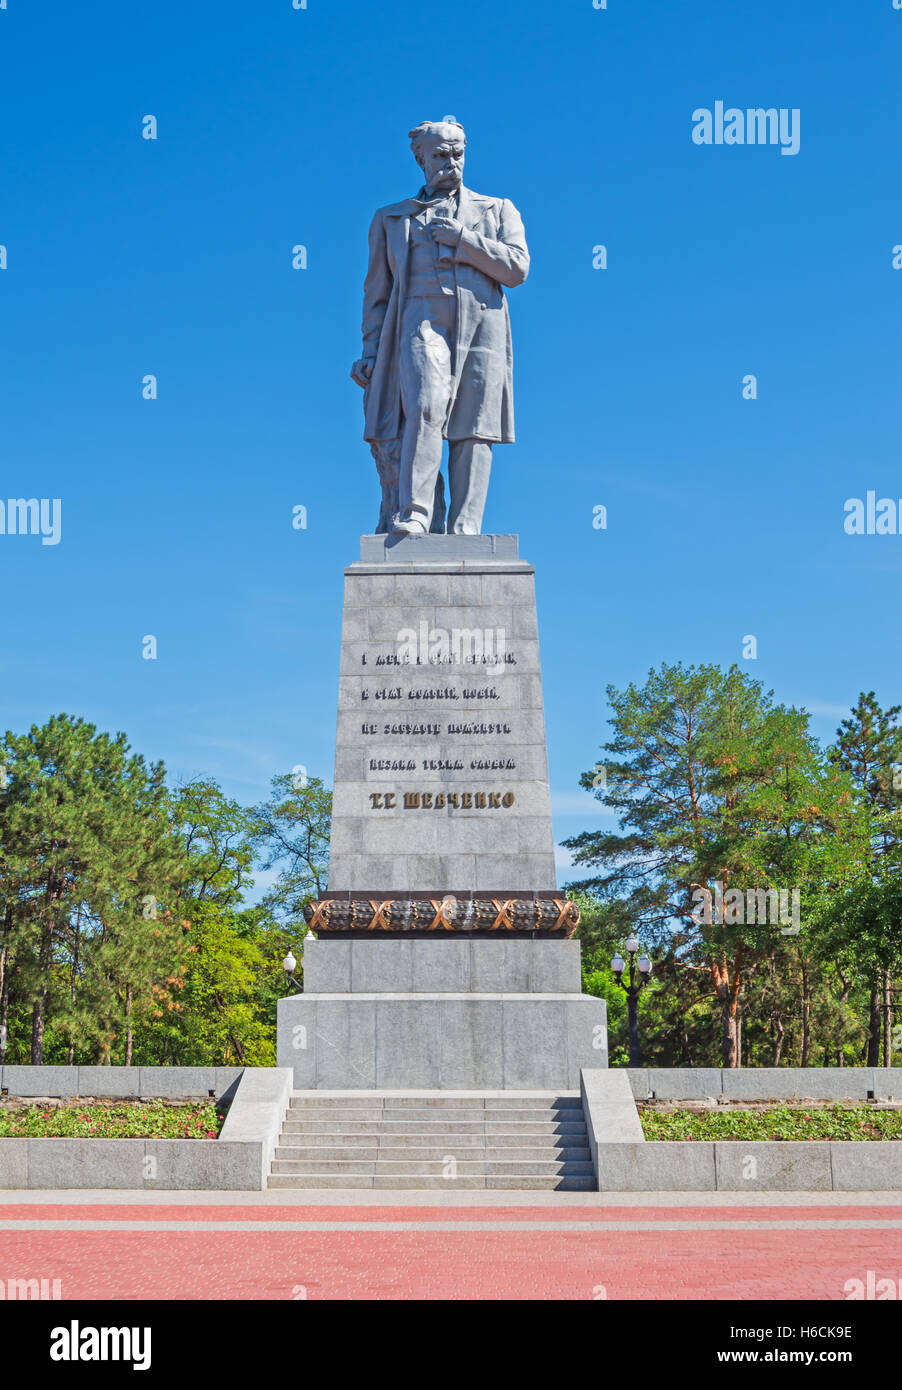 Taras Shevchenko was a Ukrainian poet, writer, public and political figure, as well as folklorist and ethnographer - Stock Image